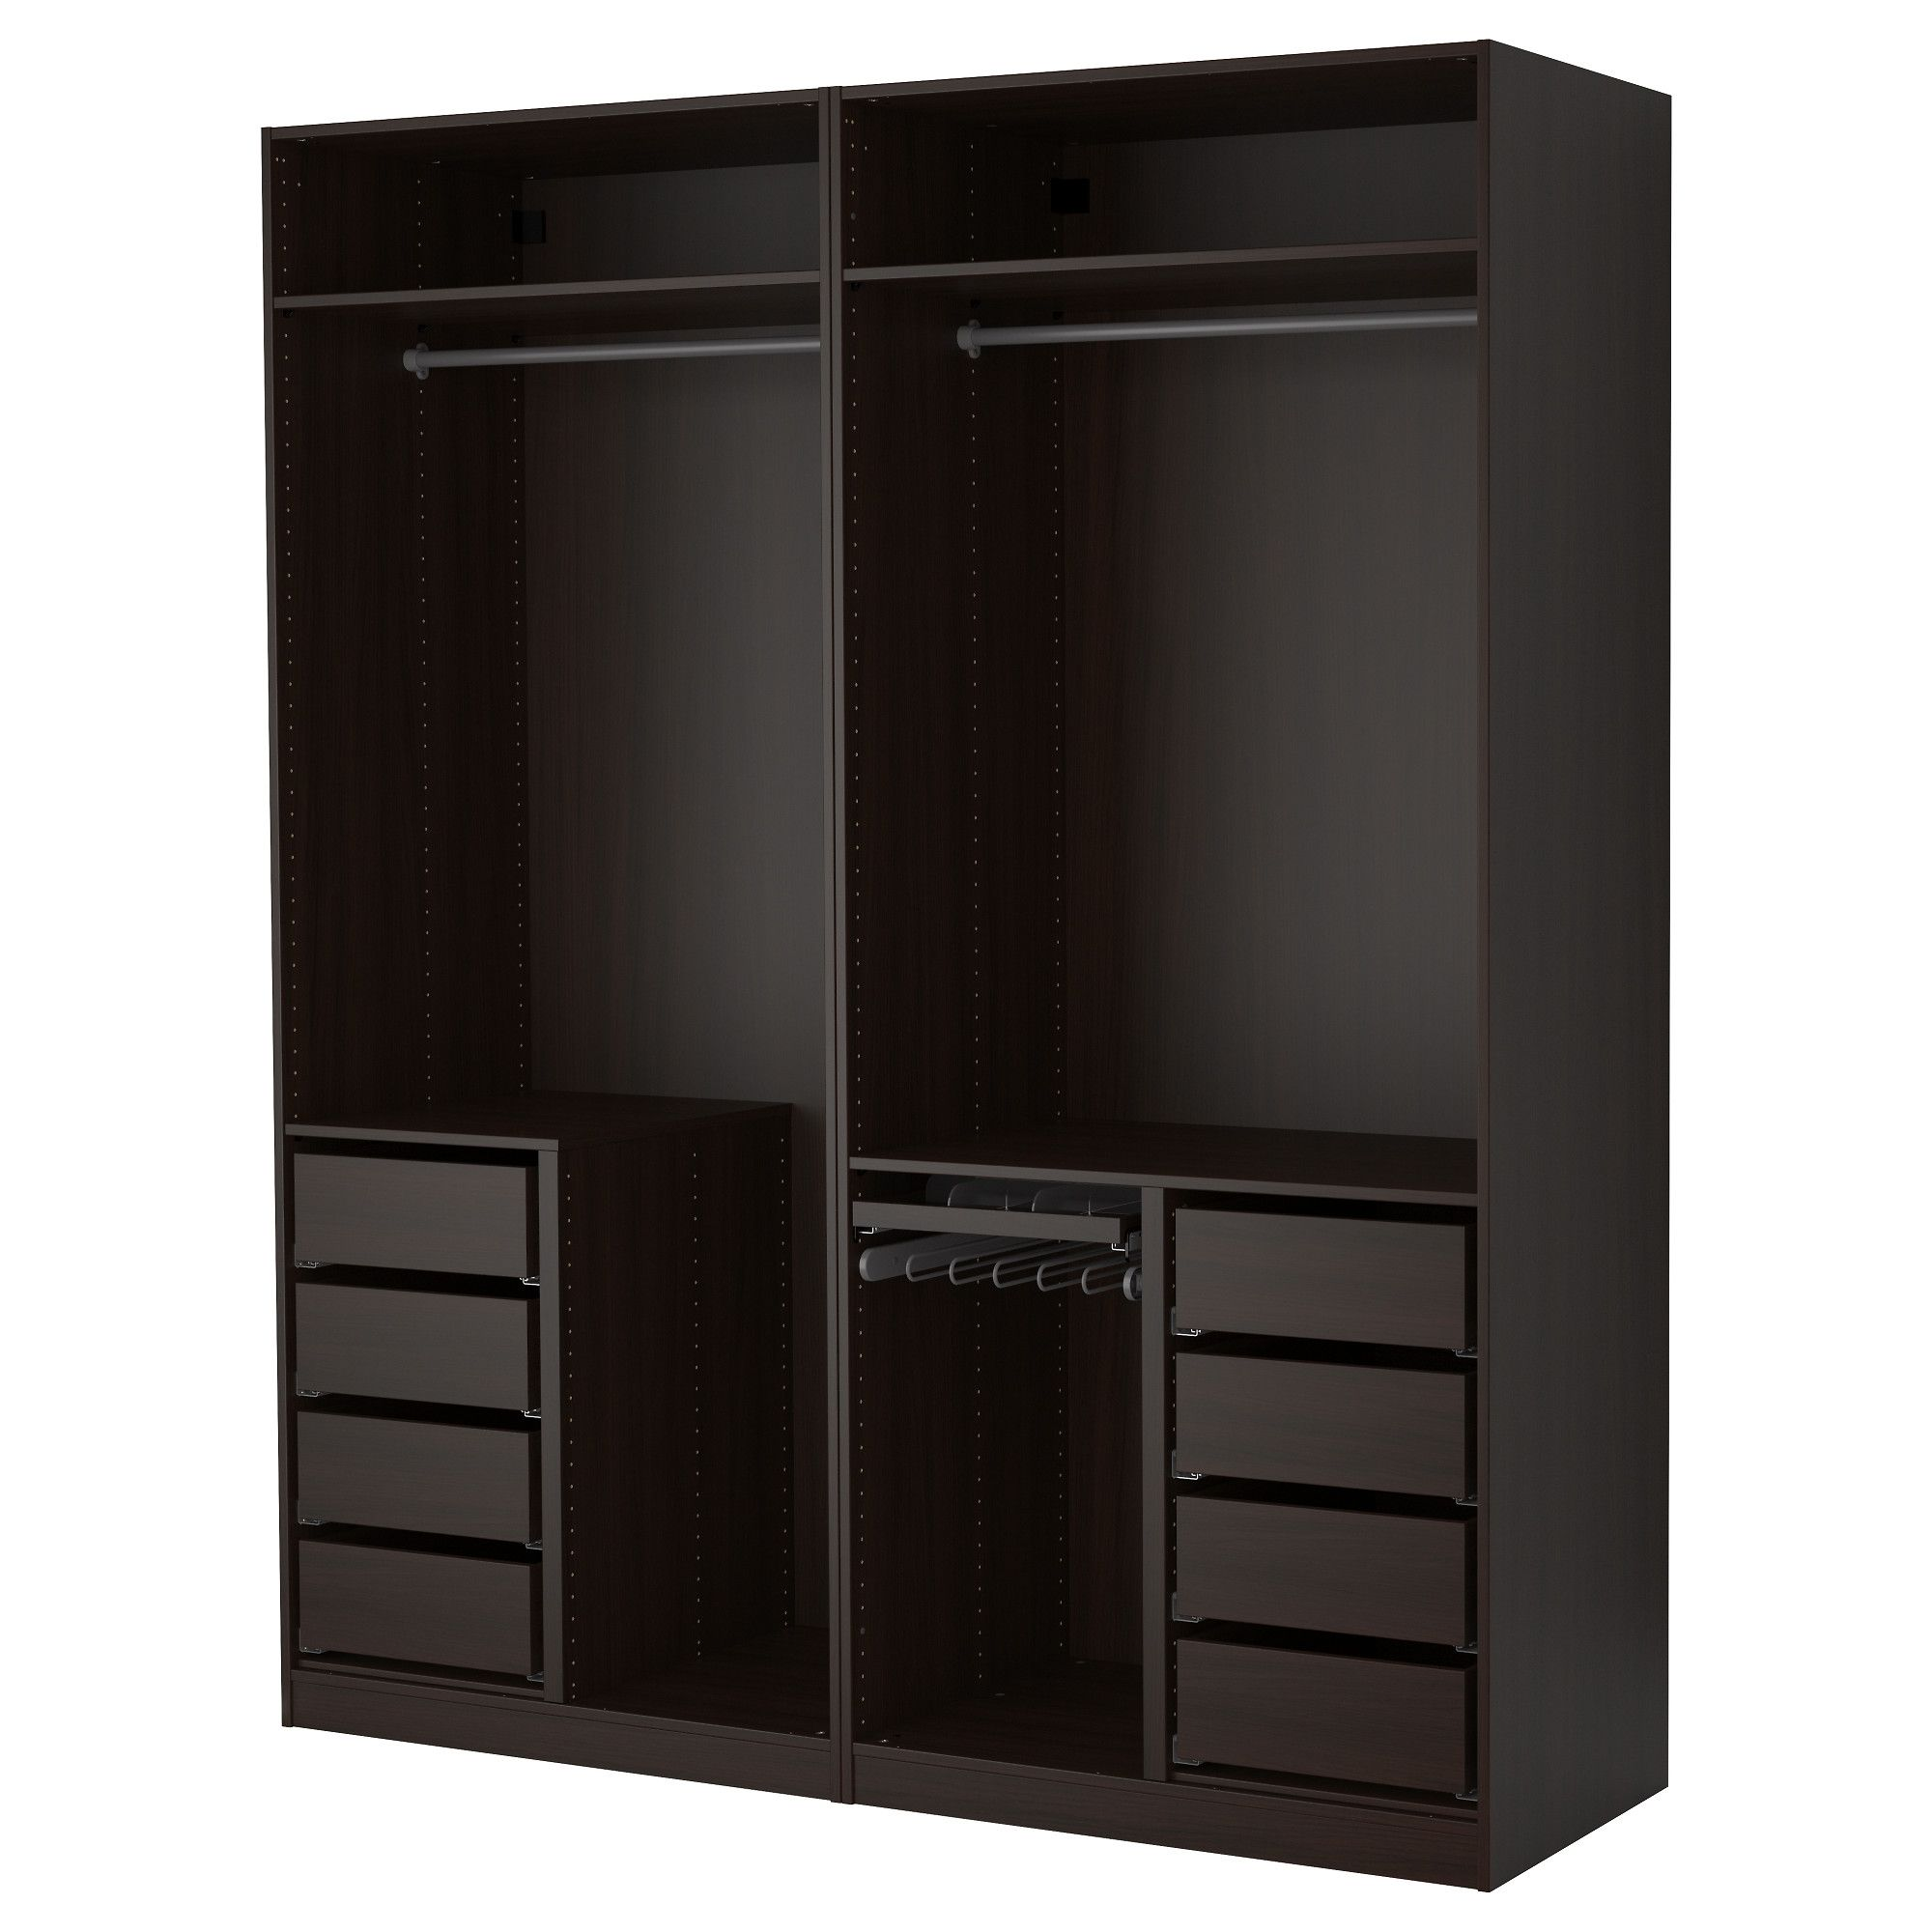 pax armoire penderie brun noir 200x58x236 cm ikea dressing dressing ouvert et armoire penderie. Black Bedroom Furniture Sets. Home Design Ideas